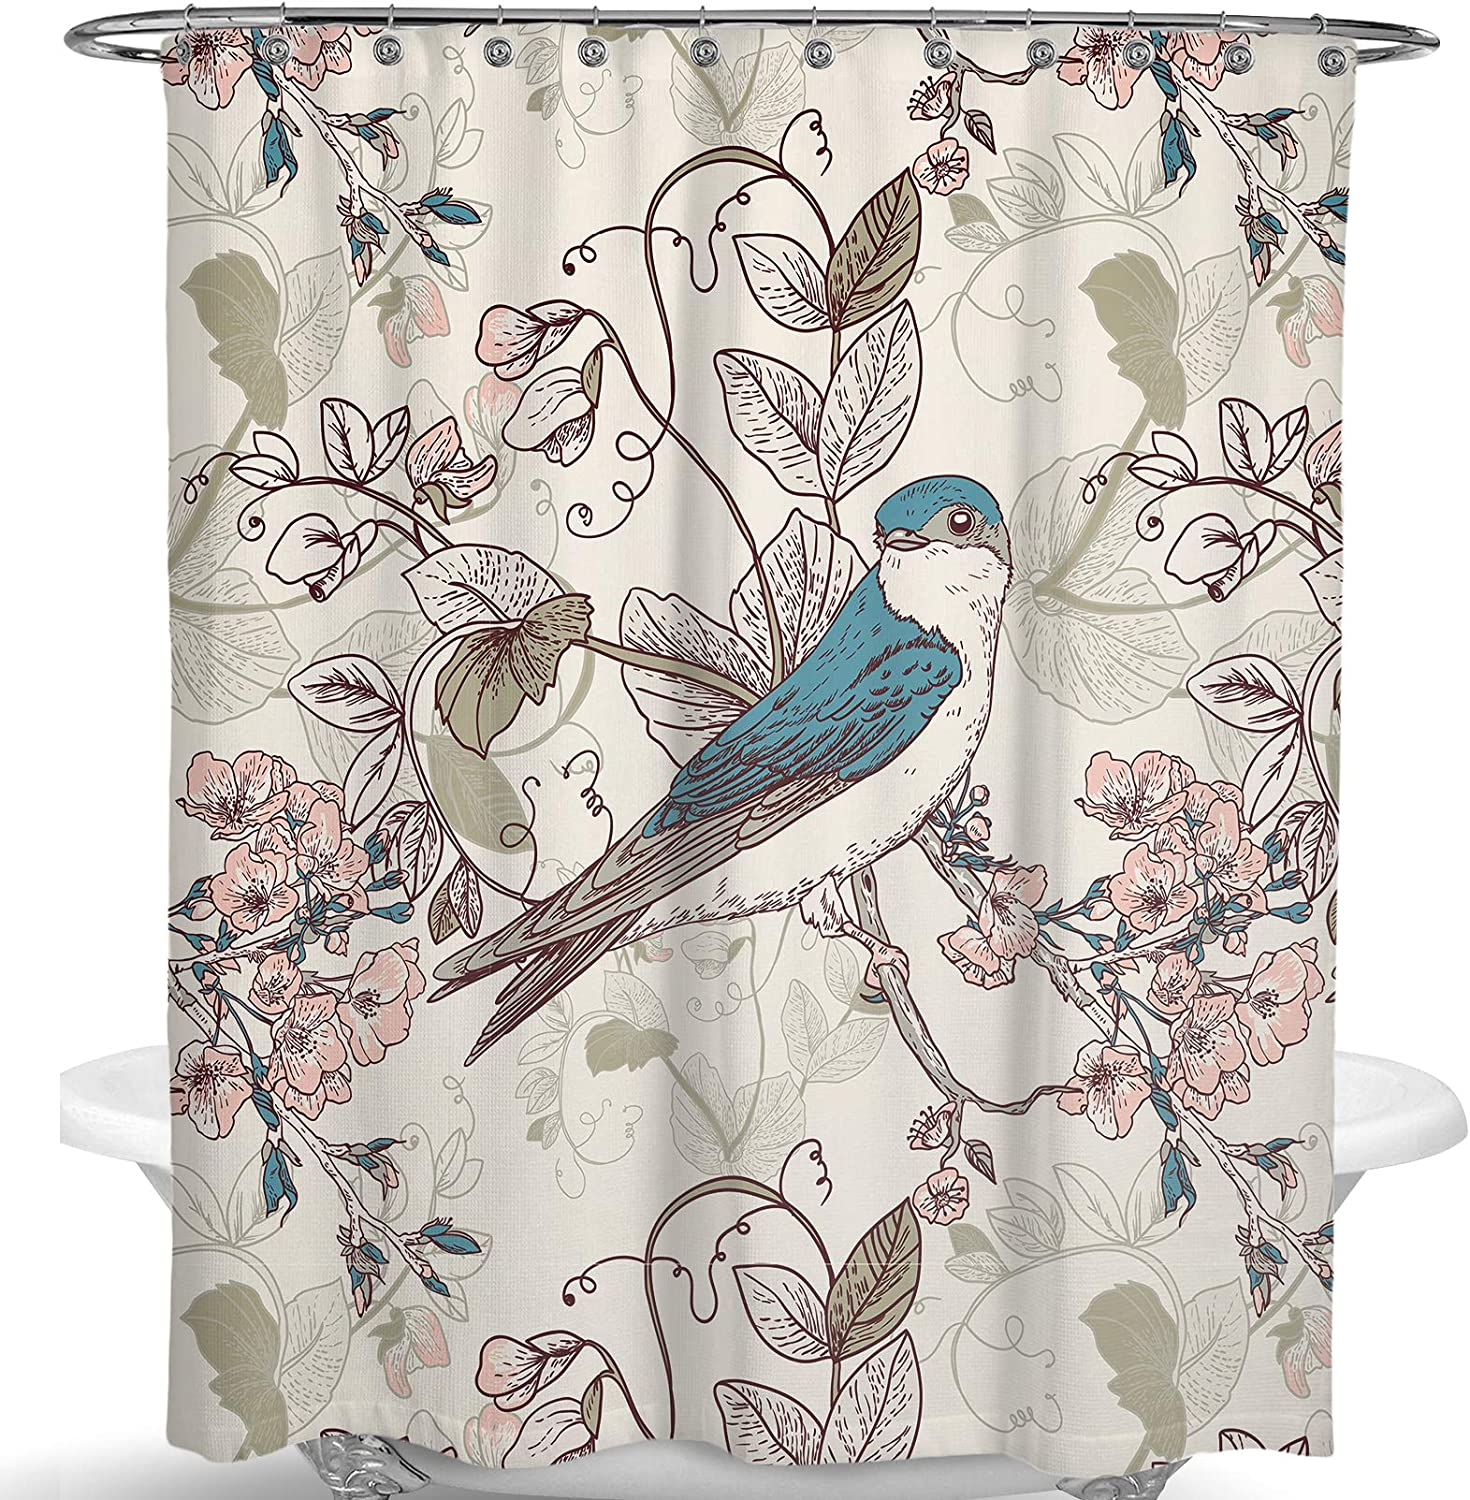 Dimaka Shower Curtain for Girls and Kids,Animal Print Decoration Design Decor Water Proof Resistant Eco Friendly Bathroom Fabric Shower Curtain (Bird